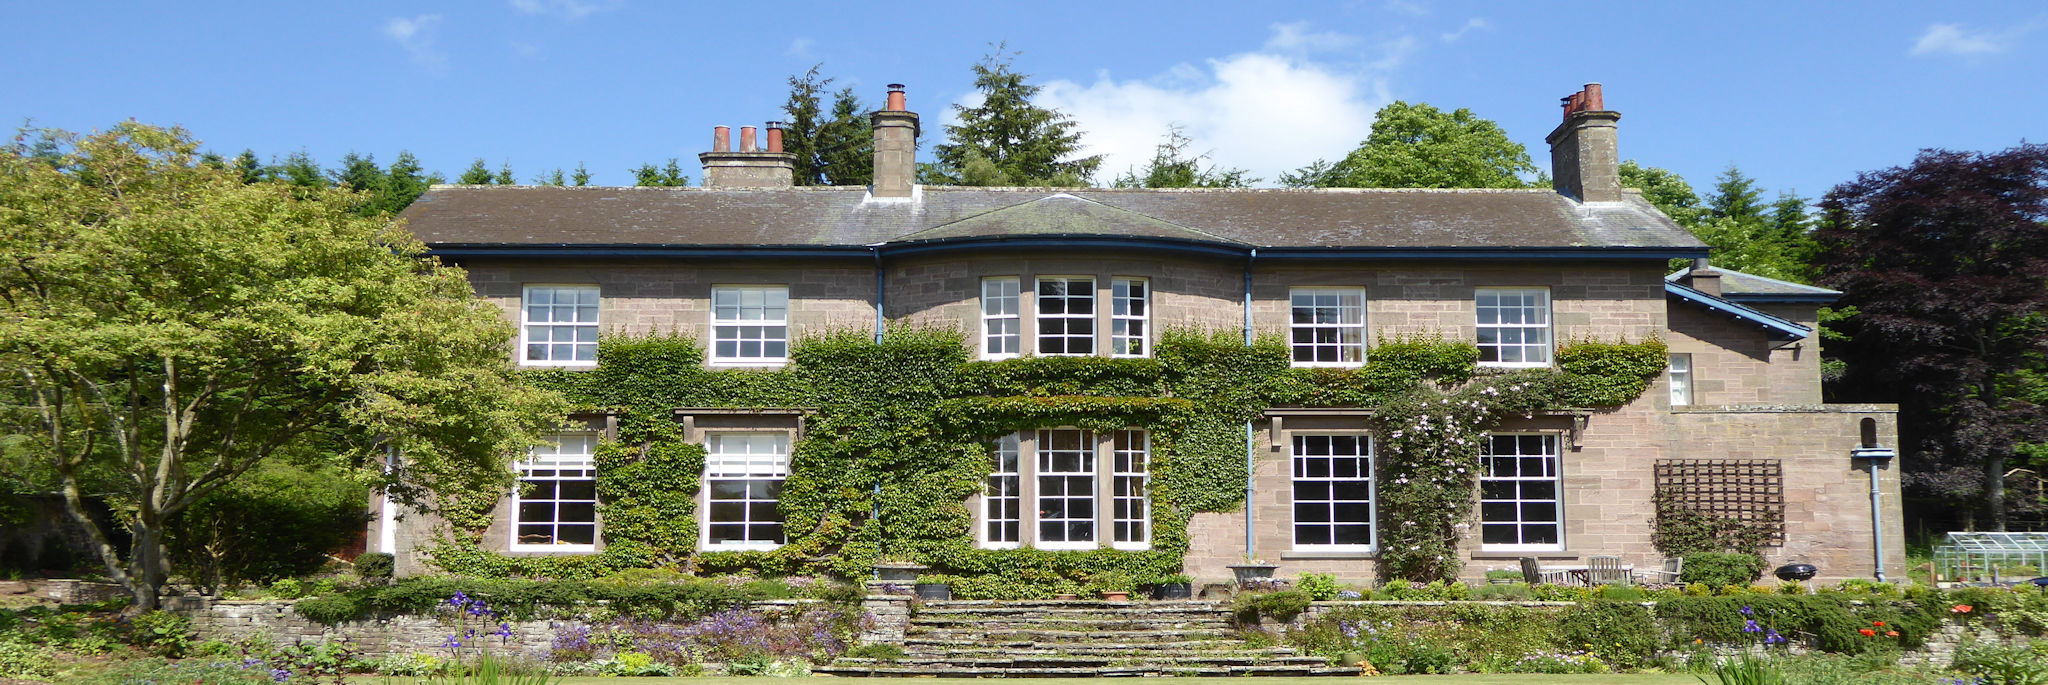 Craigellie House in Perthshire